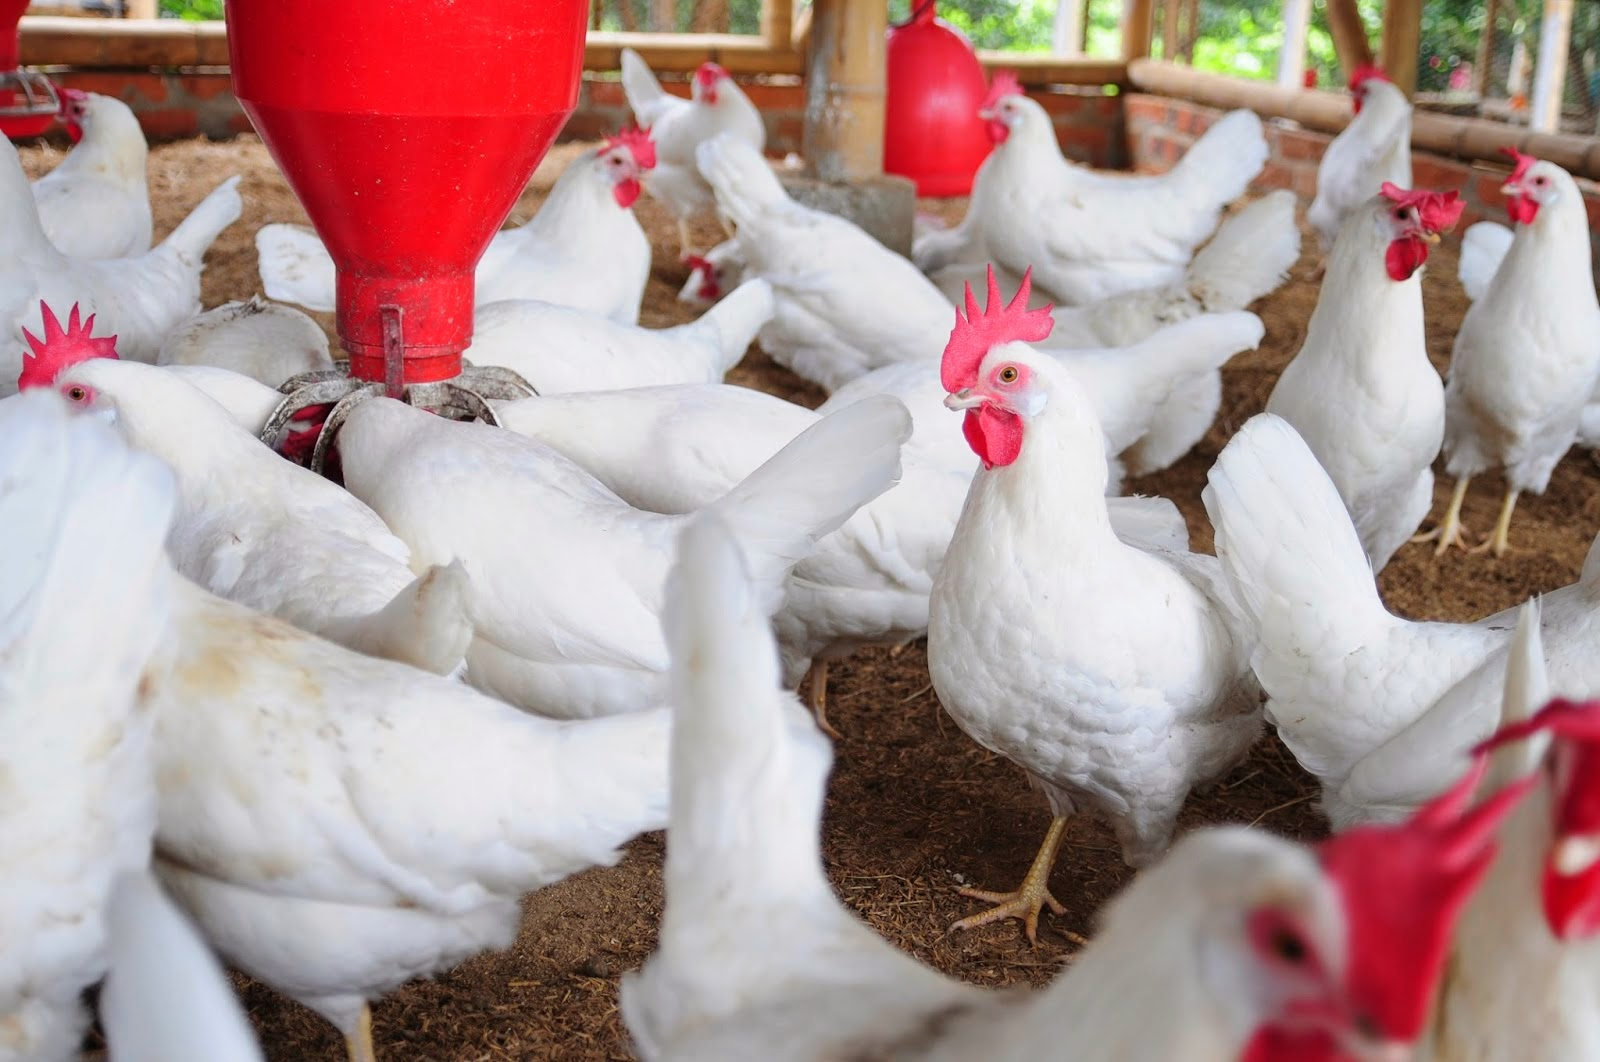 Proposal on poultry farming